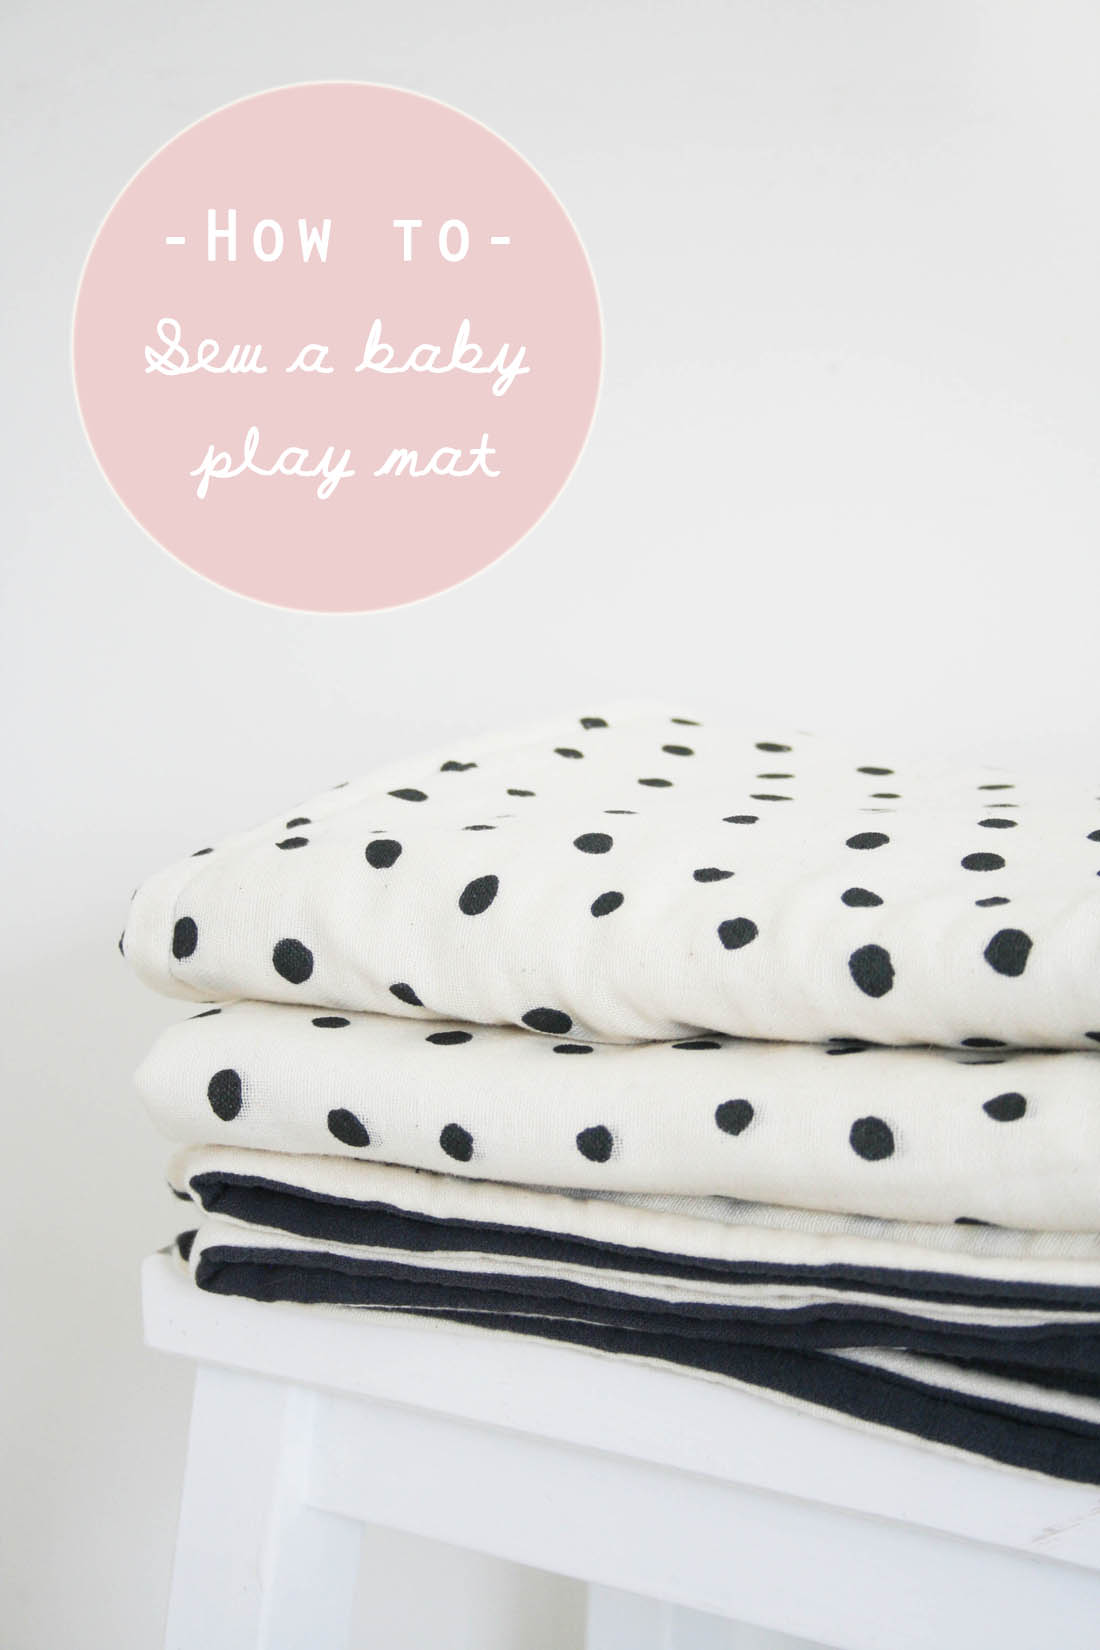 How to make a play mat for a baby | Sewing tutorial | Sewing project | Apartment Apothecary